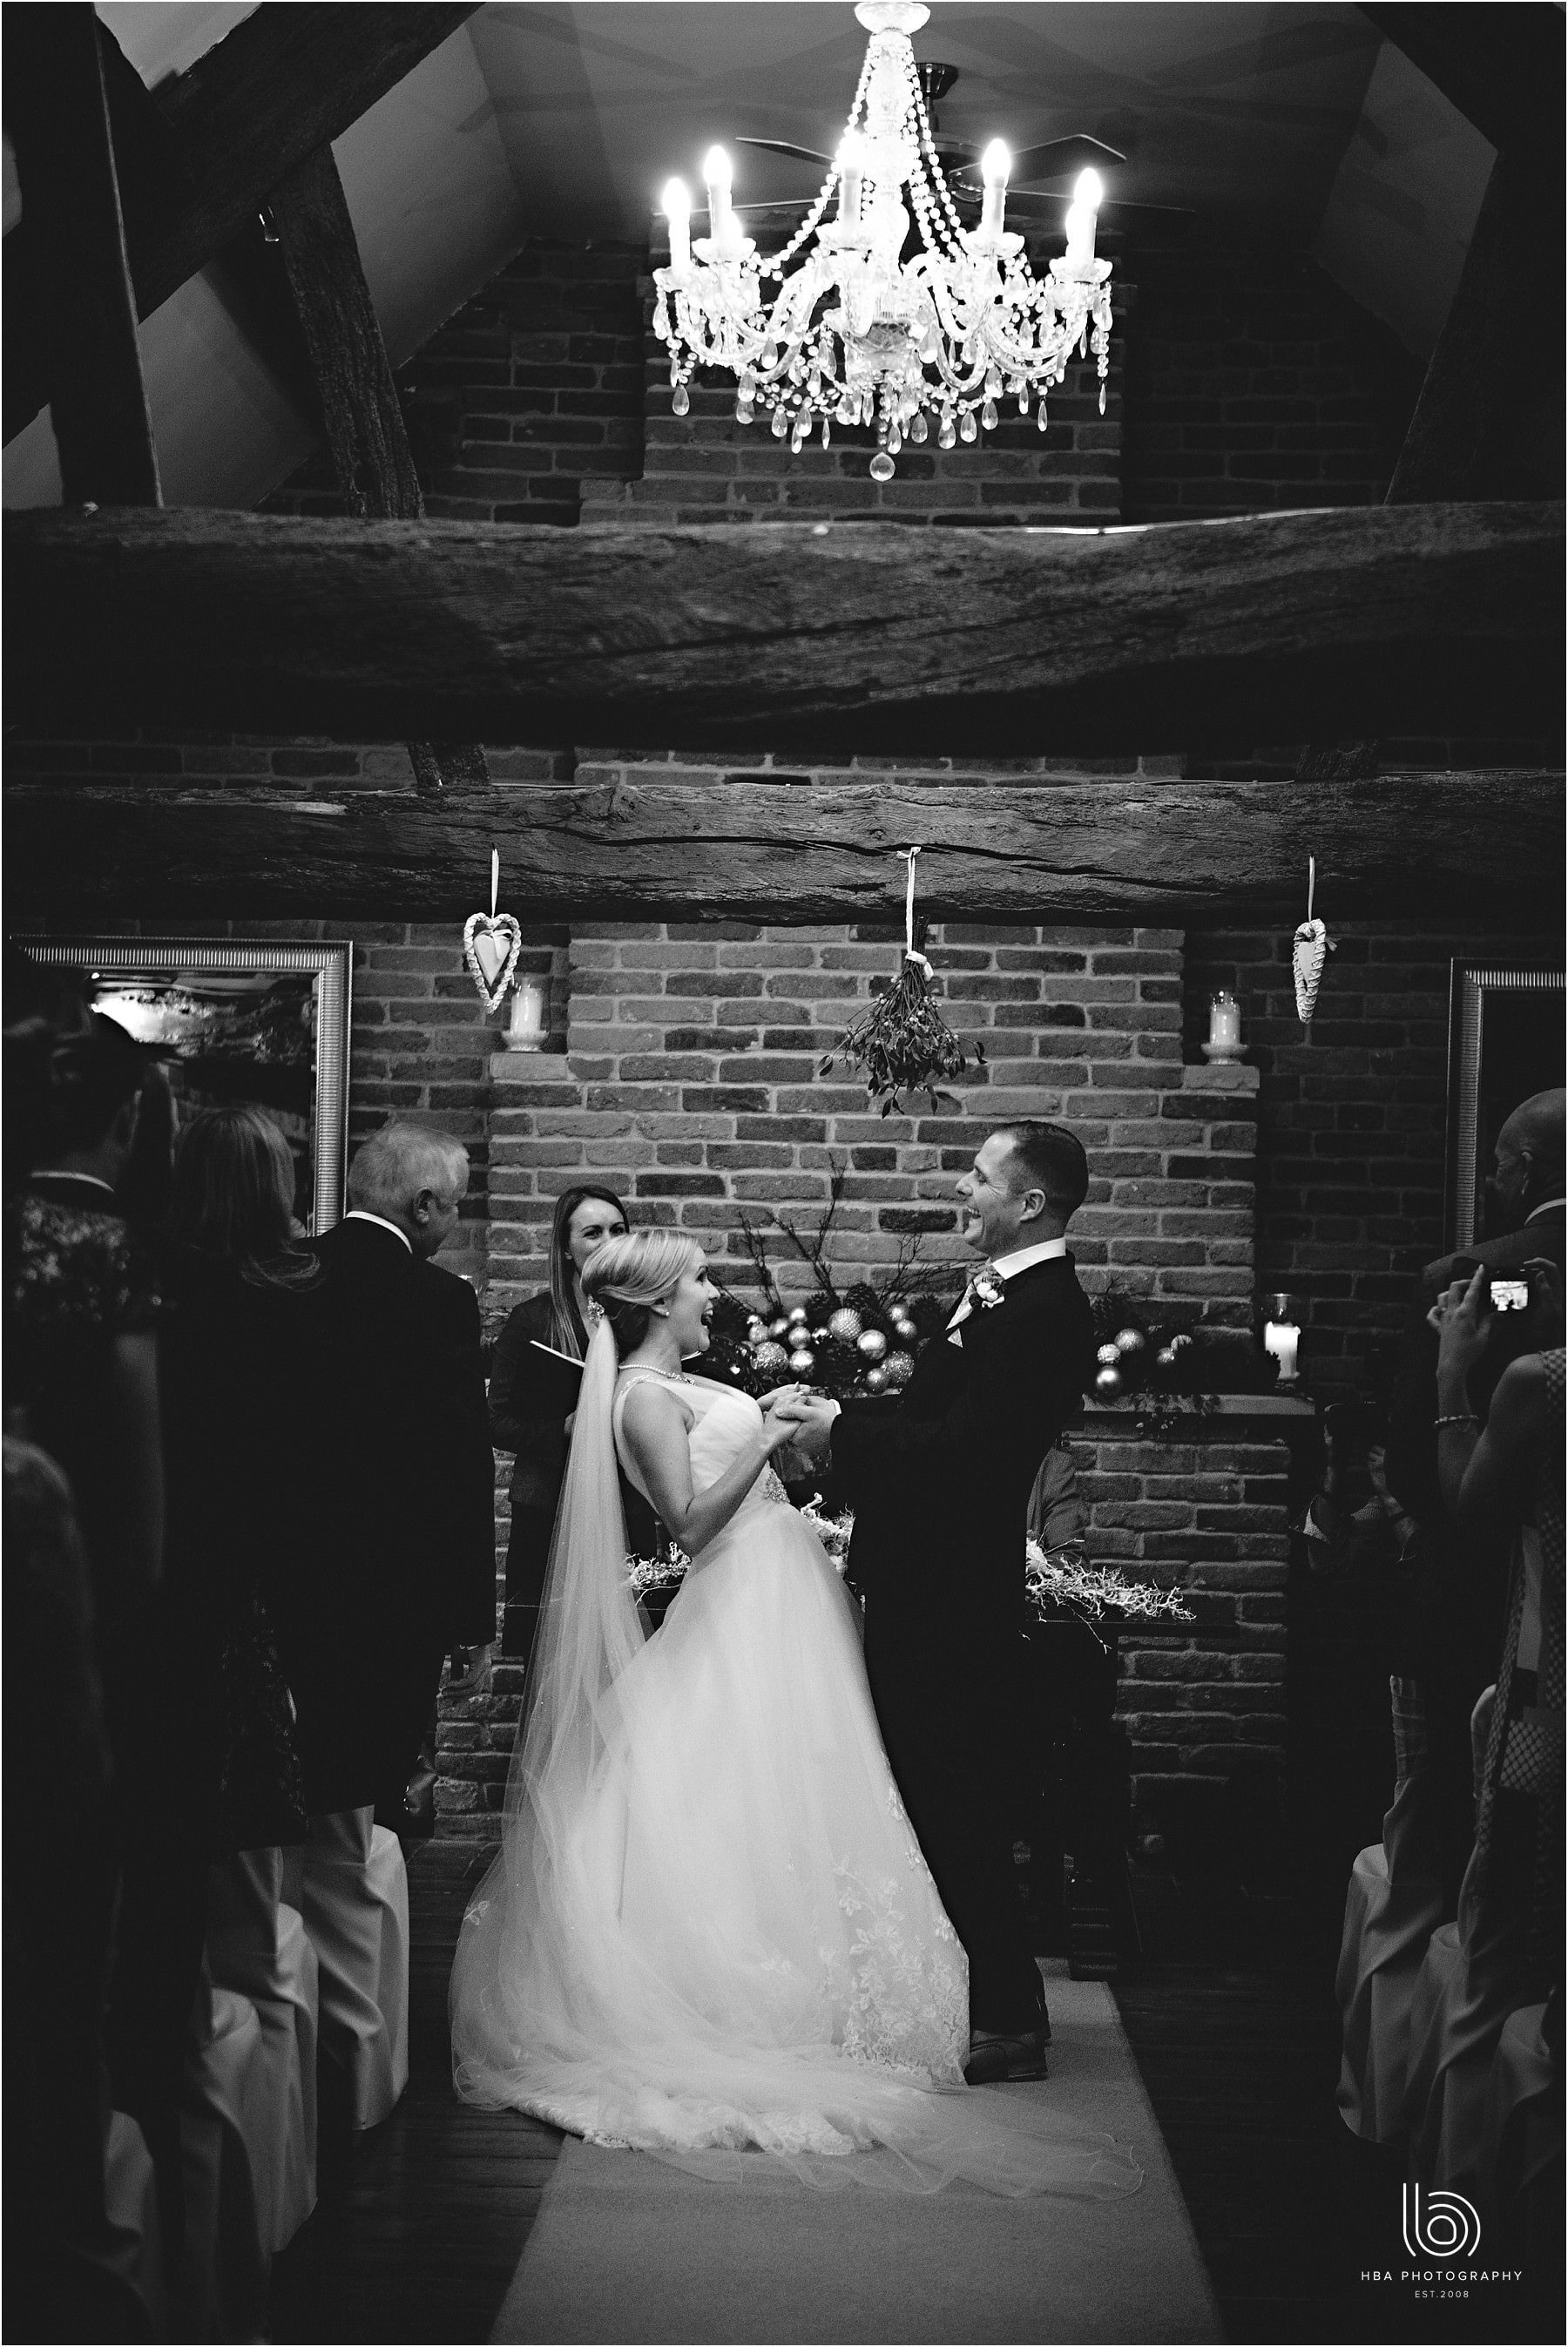 the bride and groom holding hands laughing at each other in black-and-white